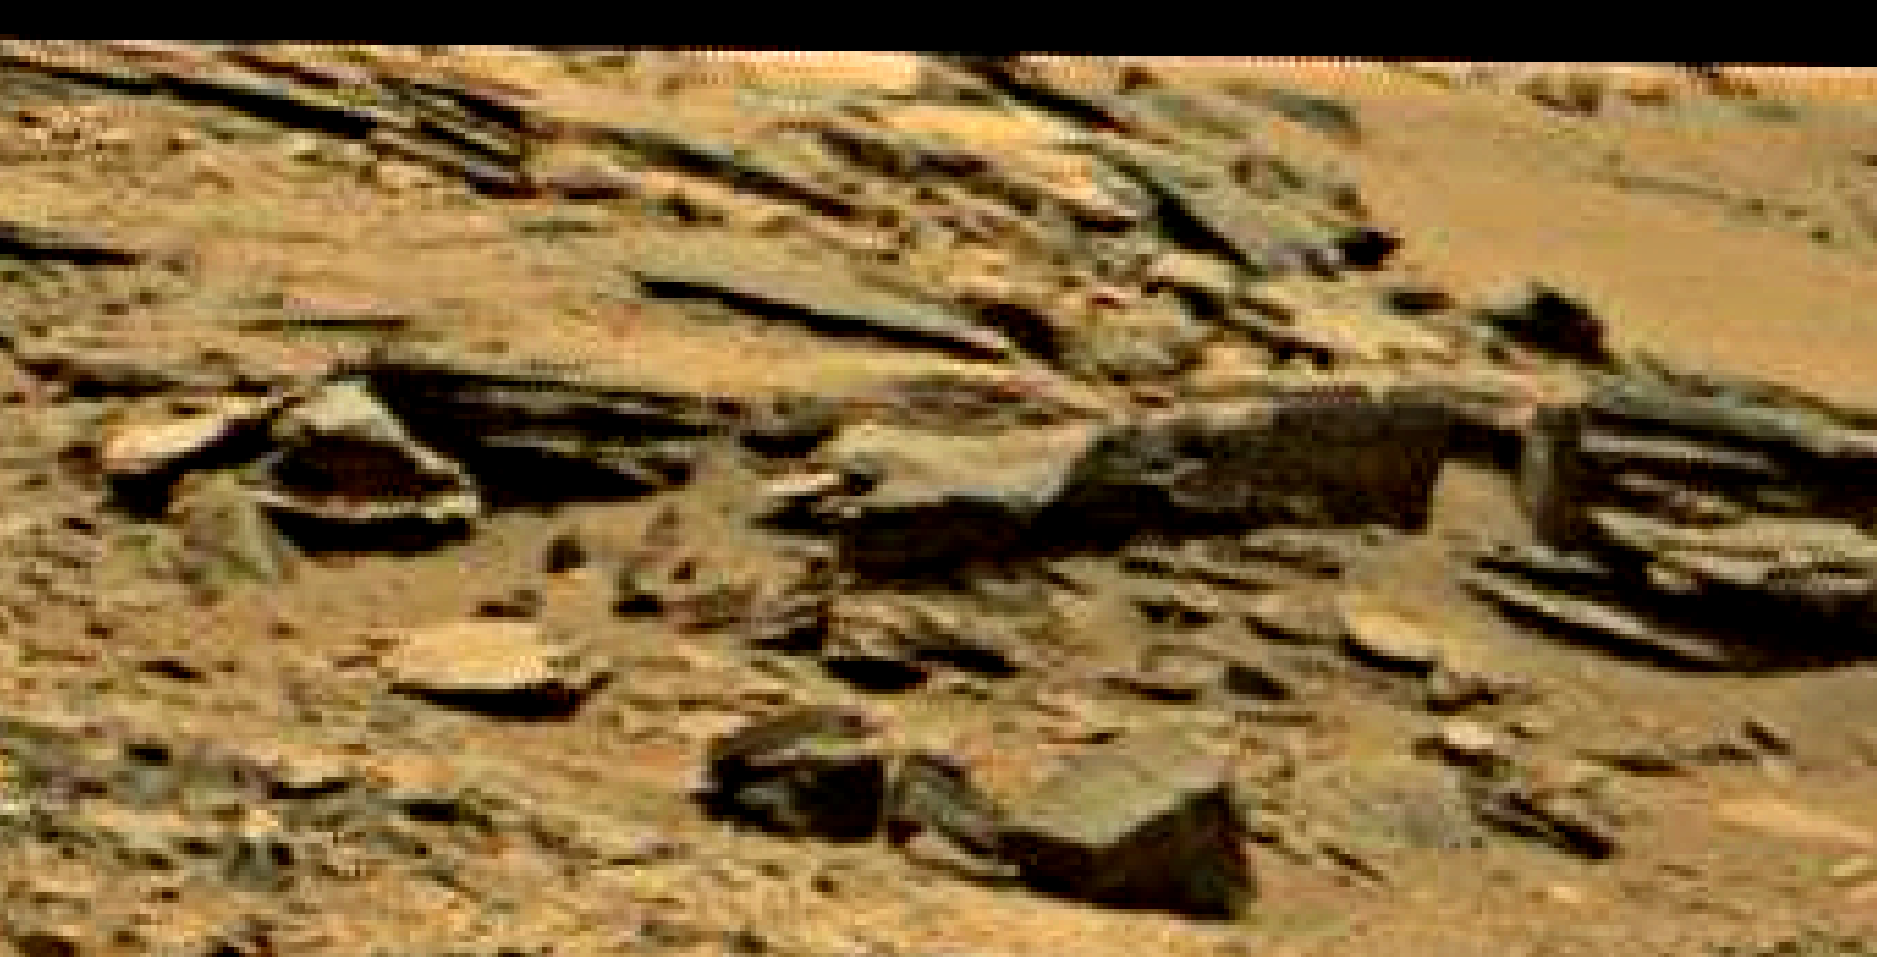 mars sol 1353 anomaly-artifacts 68a-1 was life on mars